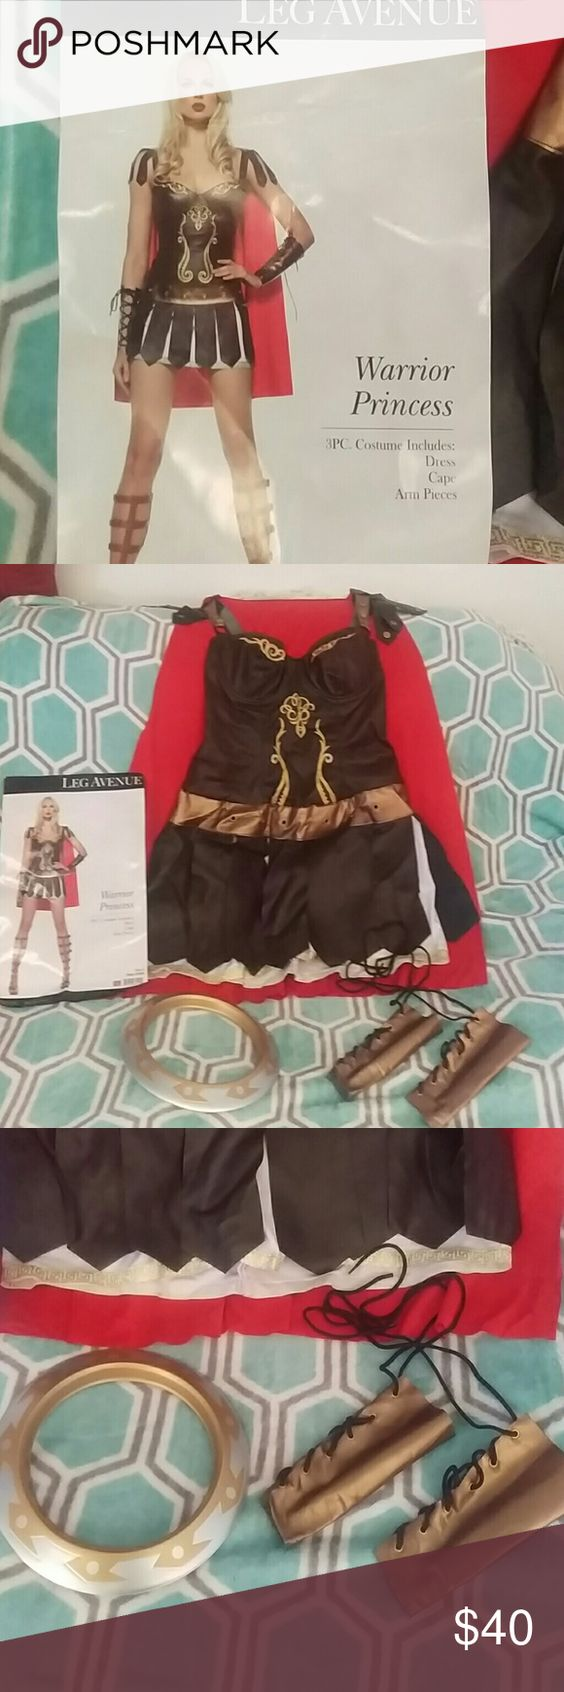 Warrior Princess costume 3PC Warrior Princess costume. Includes dress, cape and arm pieces. I am including the metal ring as an accessory that was used at the store. Used once. Open to offers!!!! Other